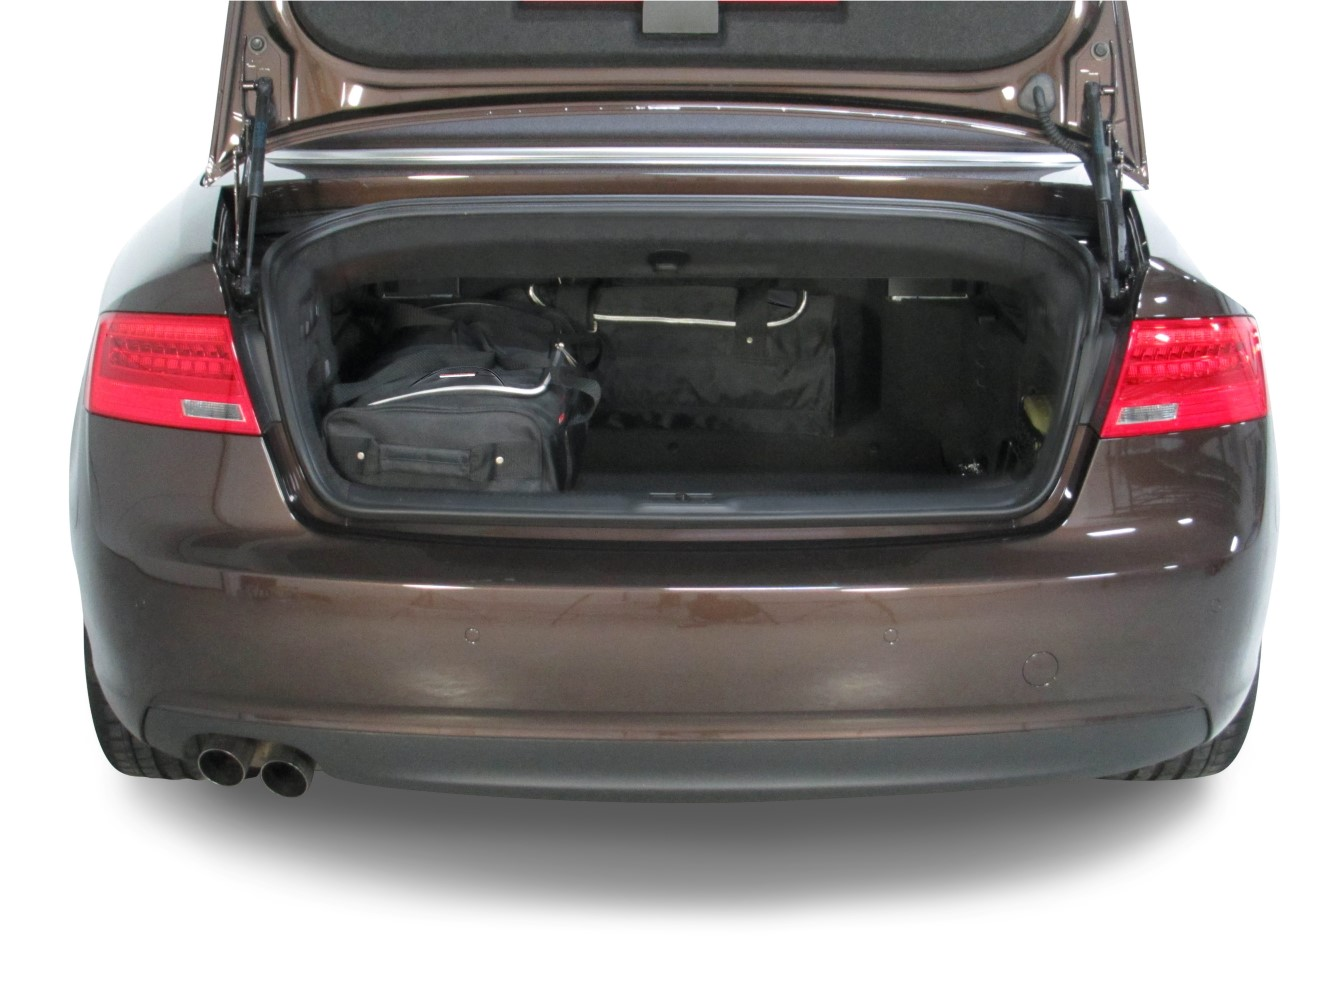 A Audi A Cabriolet F CarBags Travel Bags - Audi car 2009